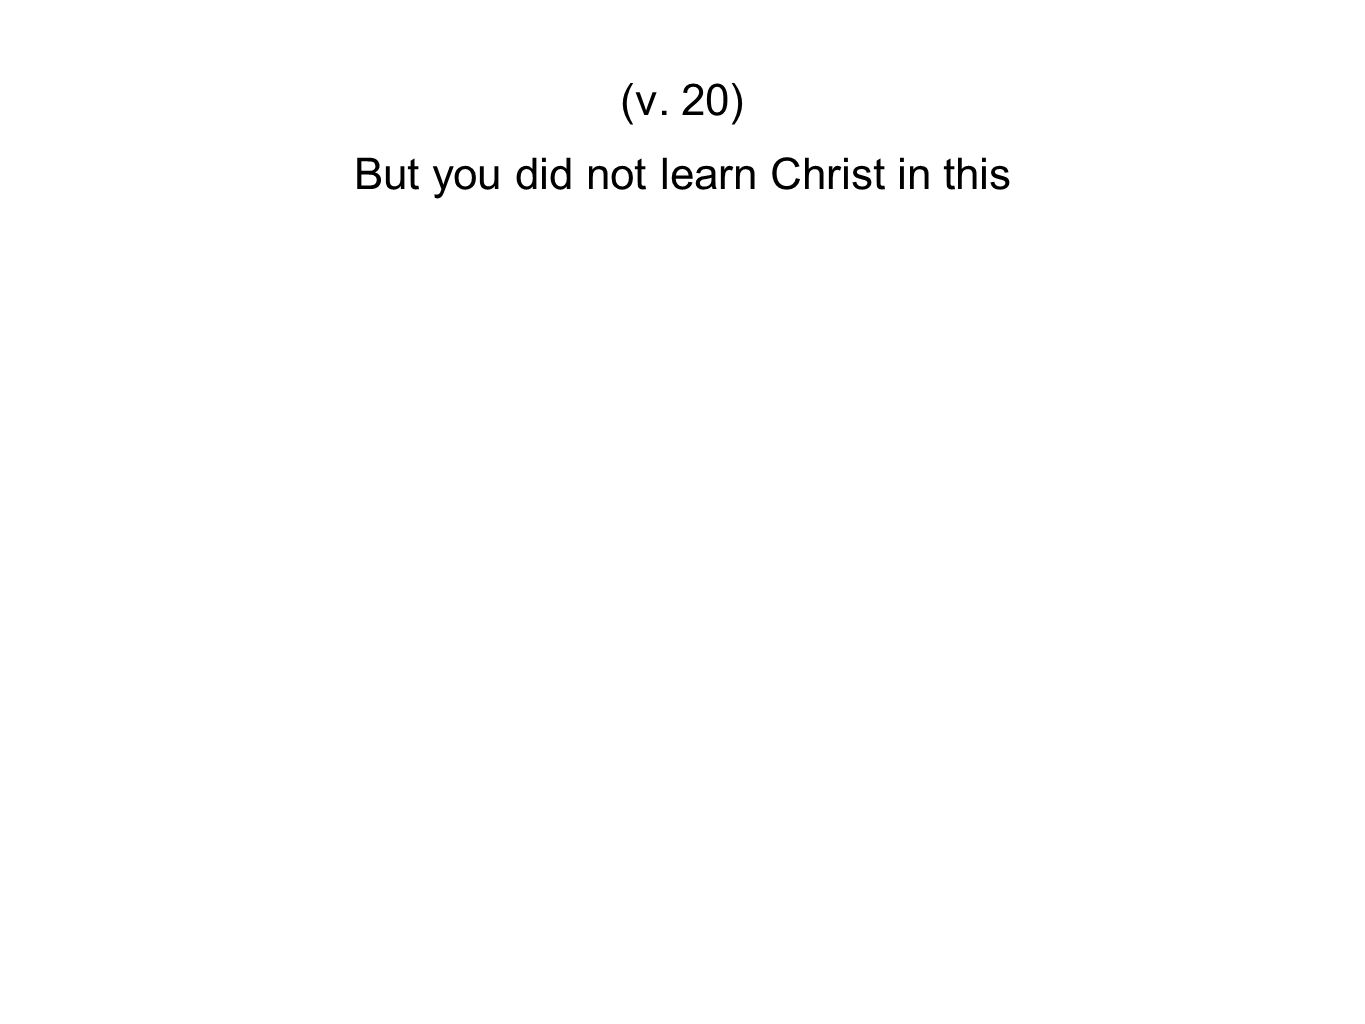 But you did not learn Christ in this